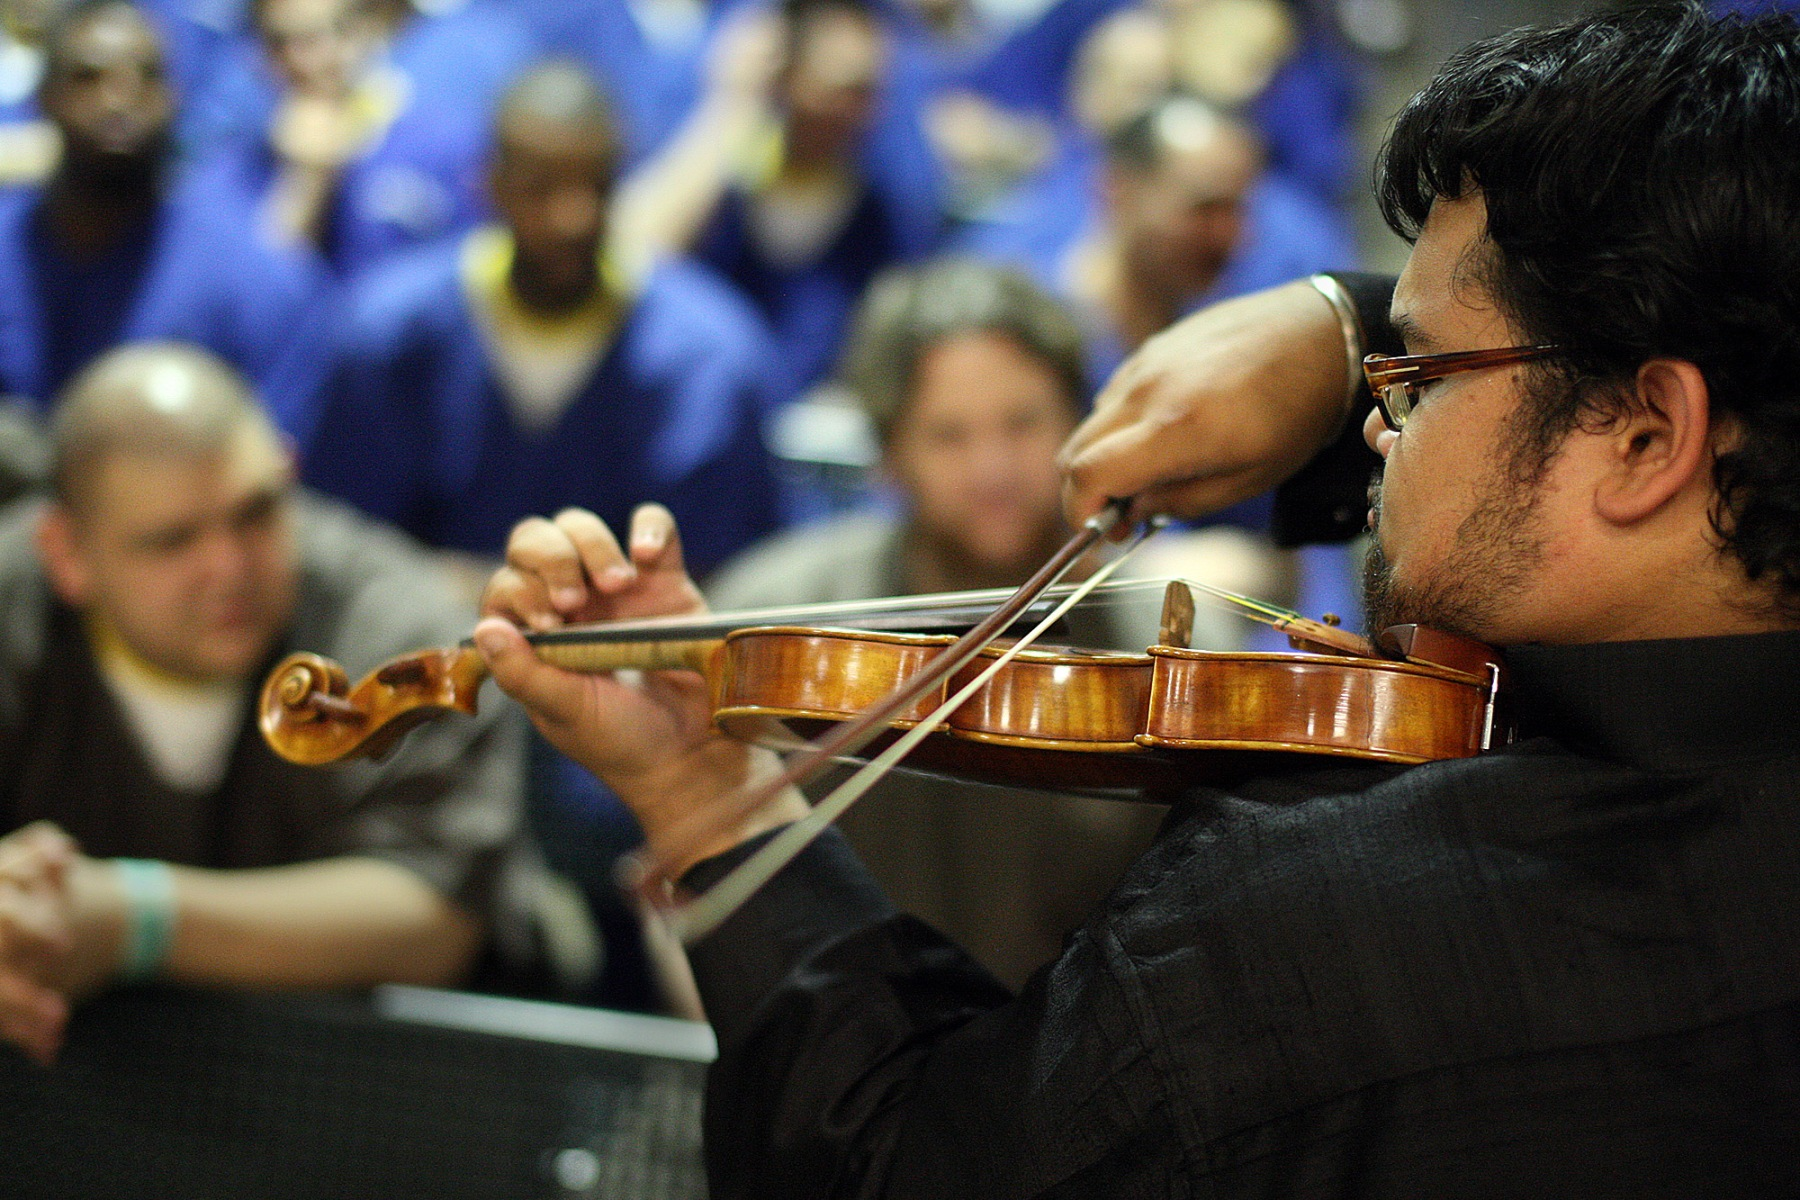 """Prison inmates, part of the M.E.R.I.T. (Maximizing Education Reaching Individual Transformation) Program, listen to Vijay Gupta play the violin as part of a summer concert performed by """"Street Symphony"""" at the Men's Central Jail in Los Angeles on August 29, 2012. Gupta recently received a 2018 MacArthur genius grant. (Photo by Gary Friedman/Los Angeles Times/Getty Images)"""